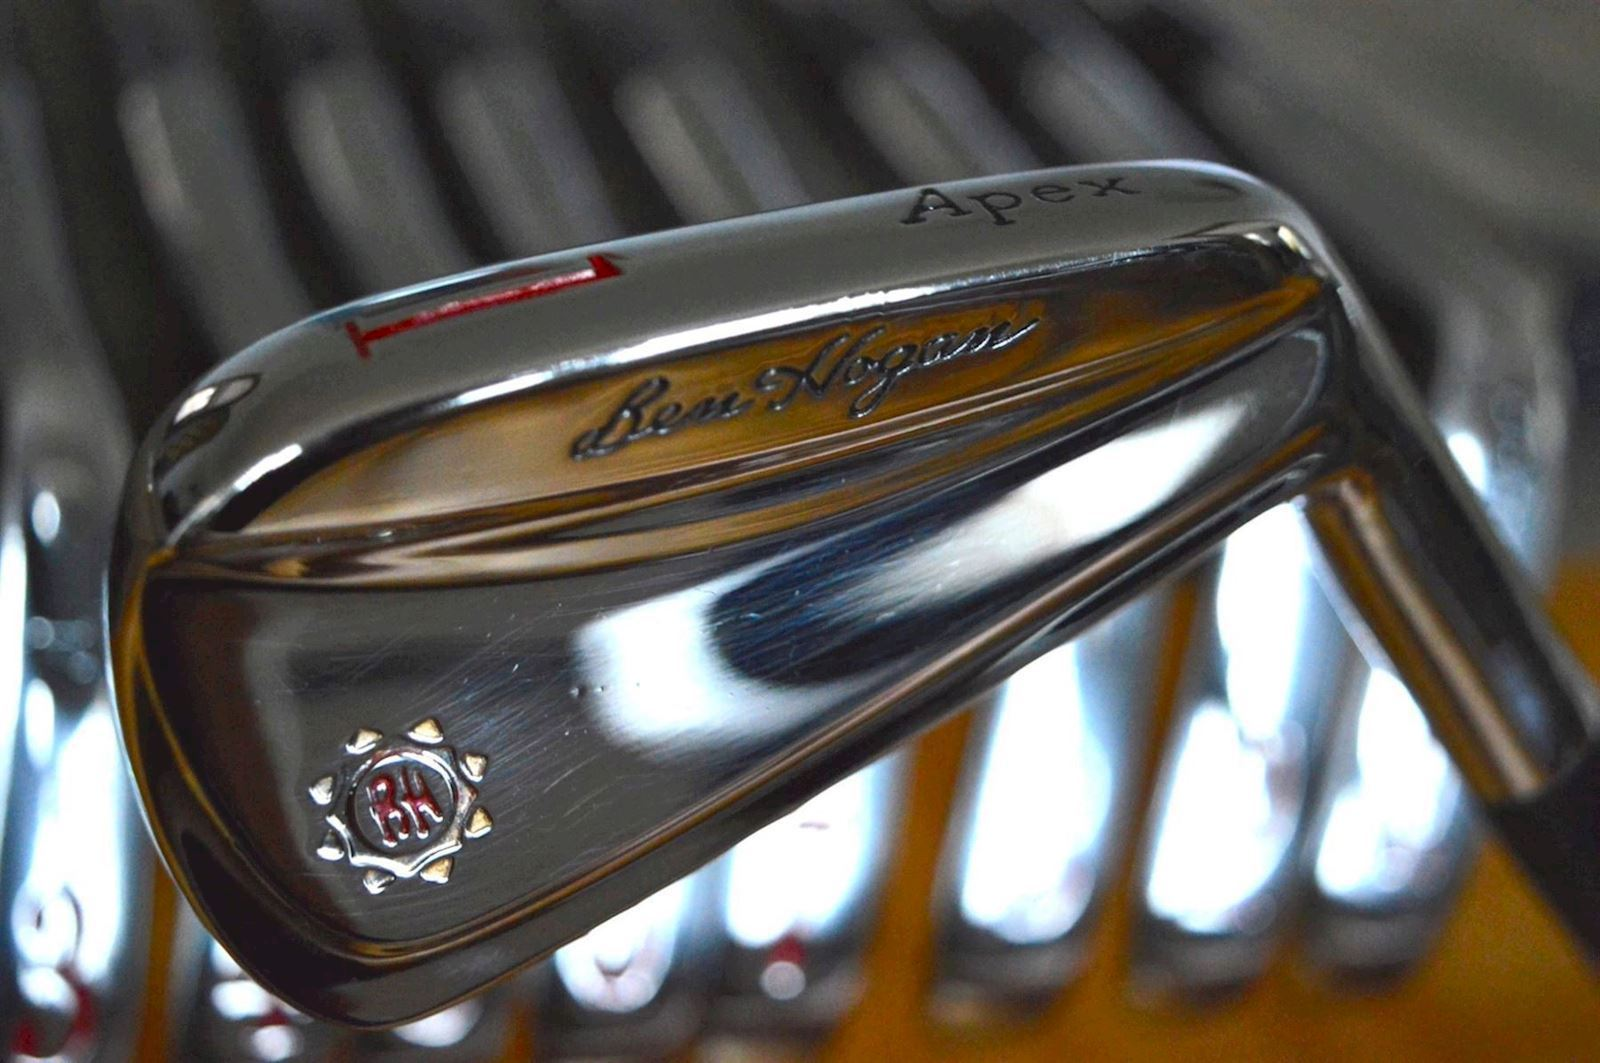 Ben Hogan iron set - The Apex 2003 forged blade set 1/E - refurbished to mint.